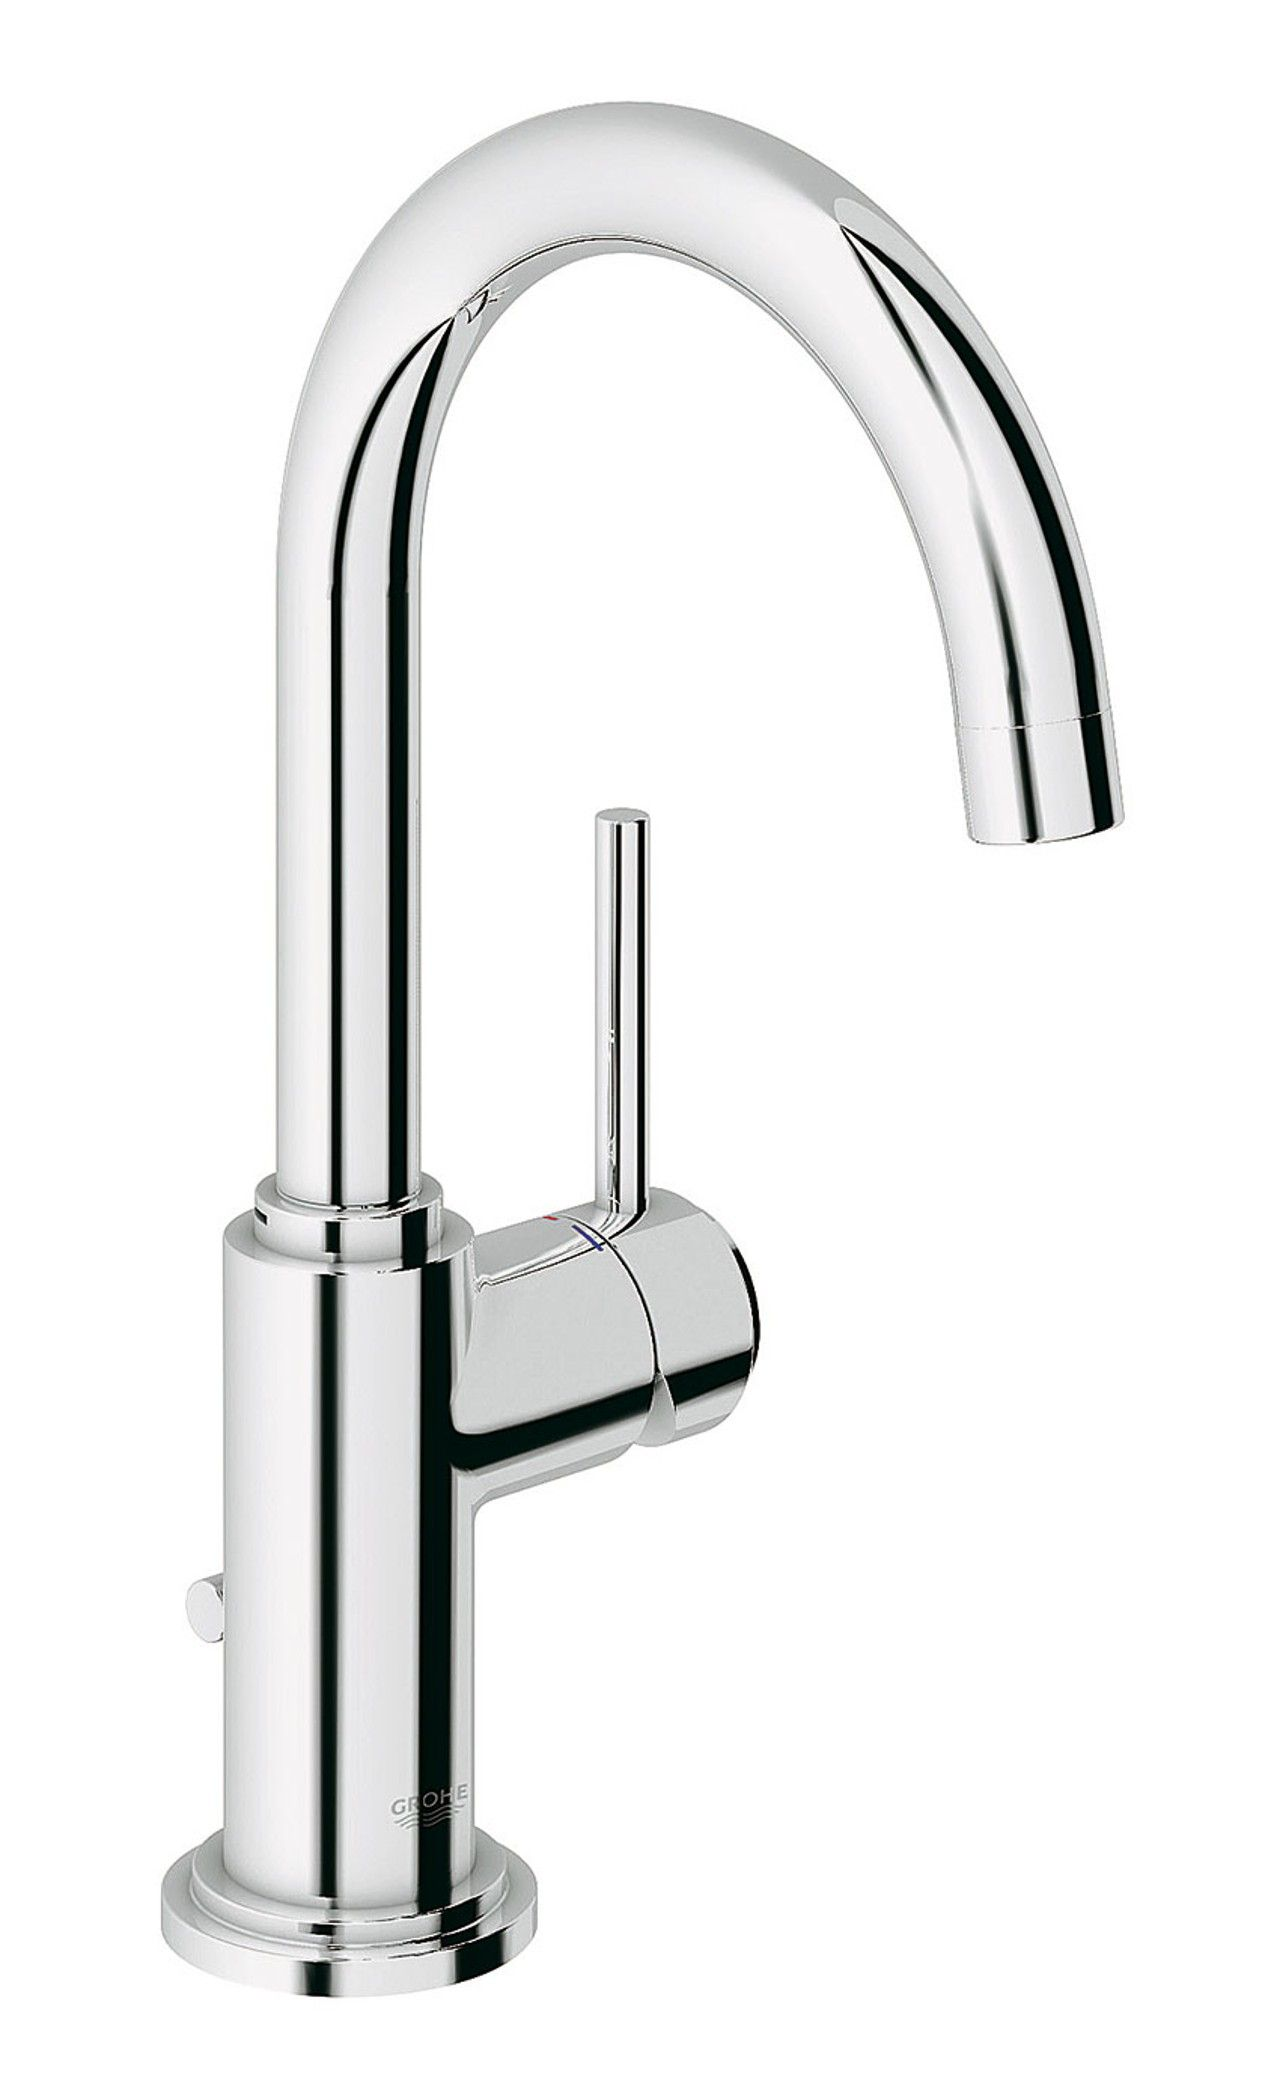 Grohe faucet bathroom - Grohe Atrio With Their Classic Design The Grohe Atrio Faucets Echo The Bauhaus Philosophy Of